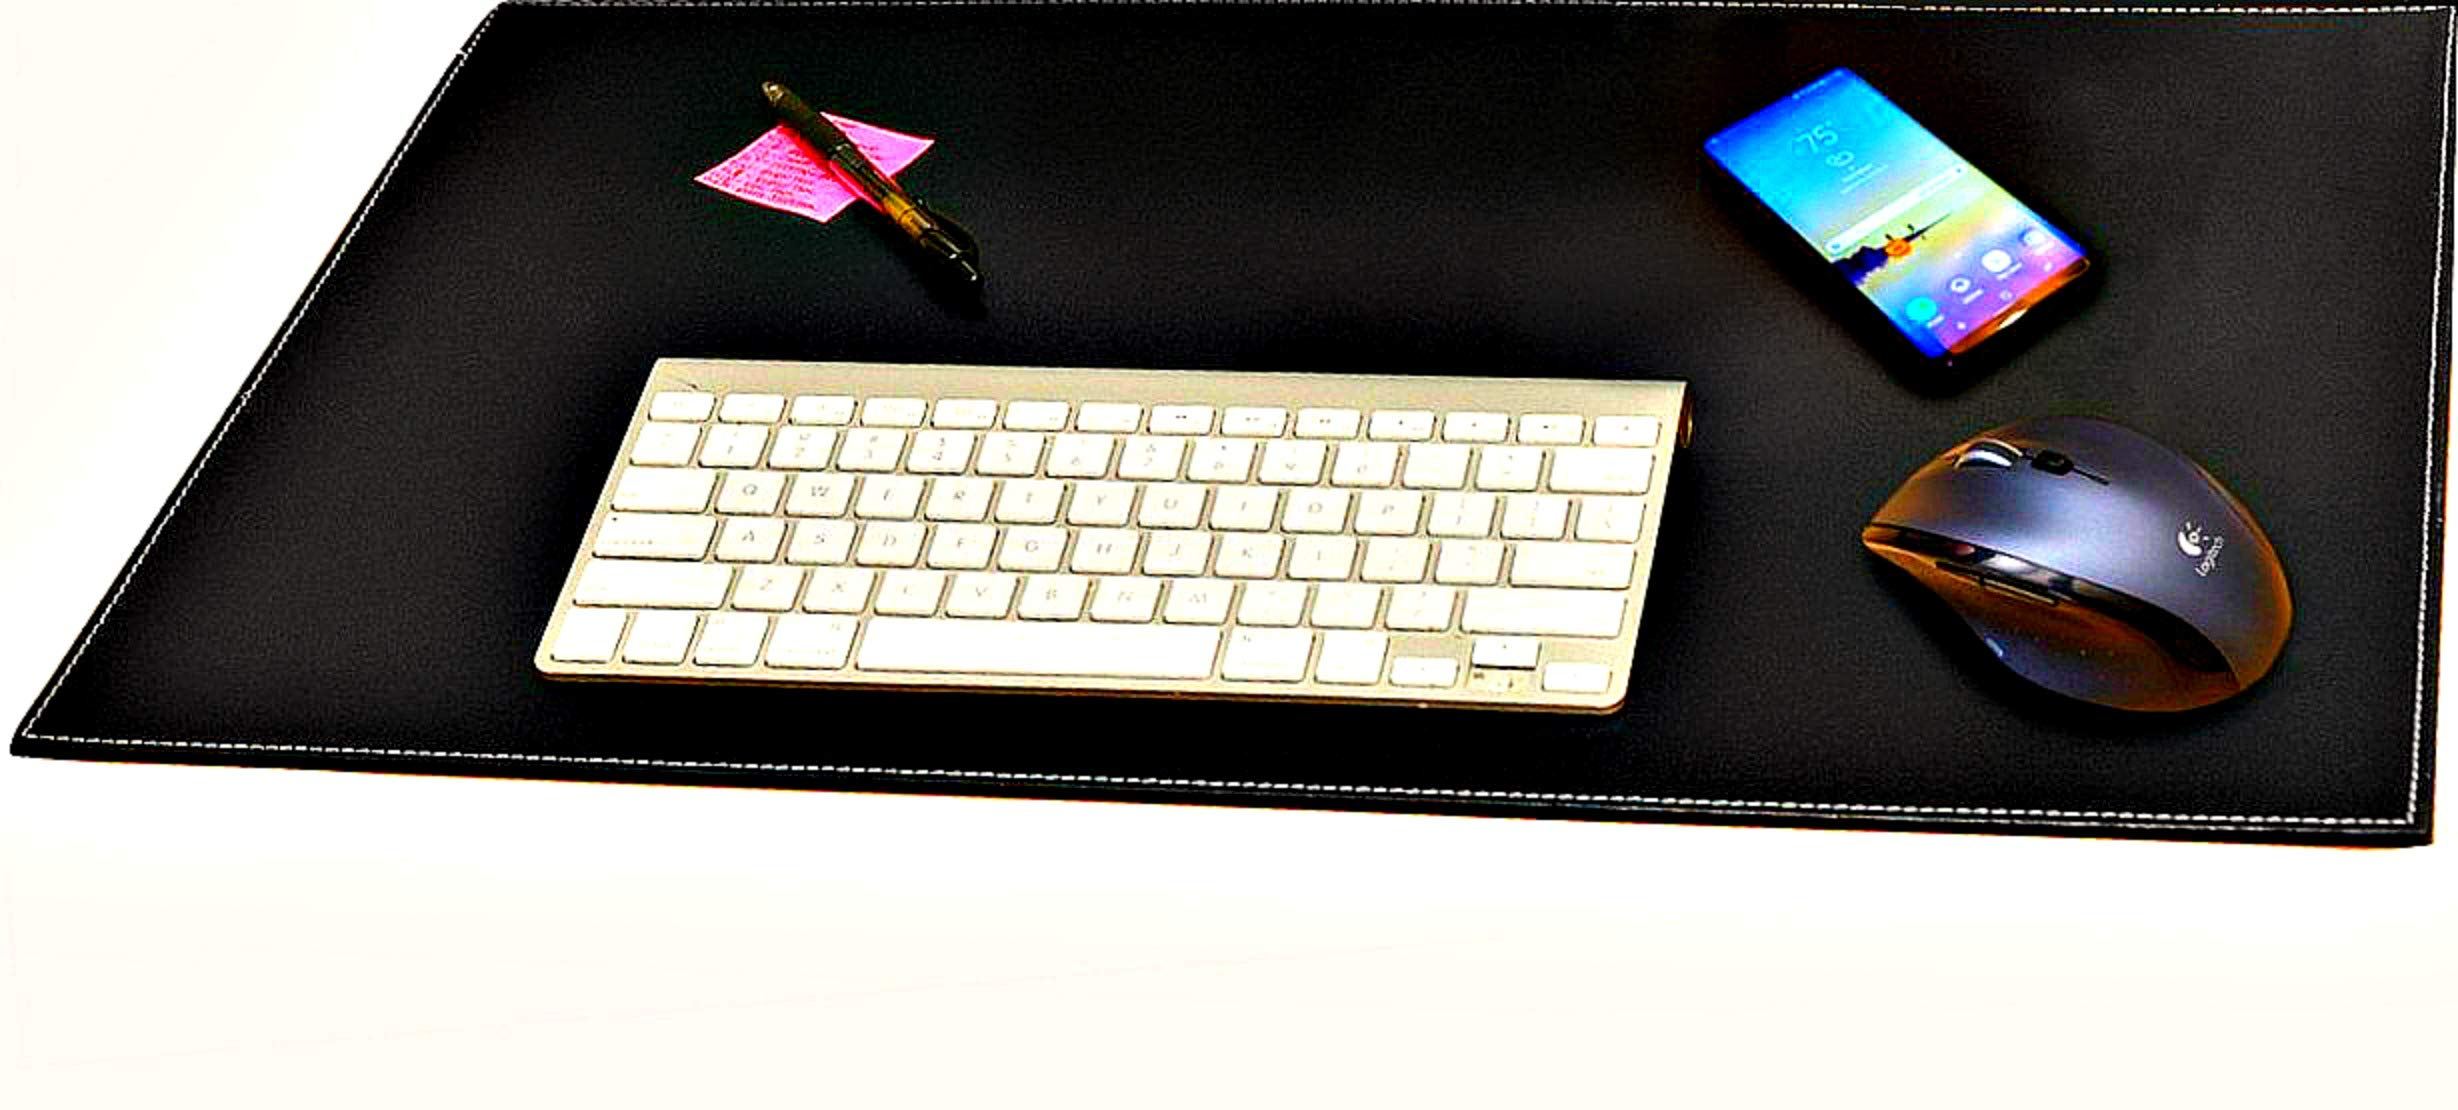 Computer Leather Desk Pad, Stylish Mat Cover, Reversible Color Design Black to White, (16 x 24 Inches)